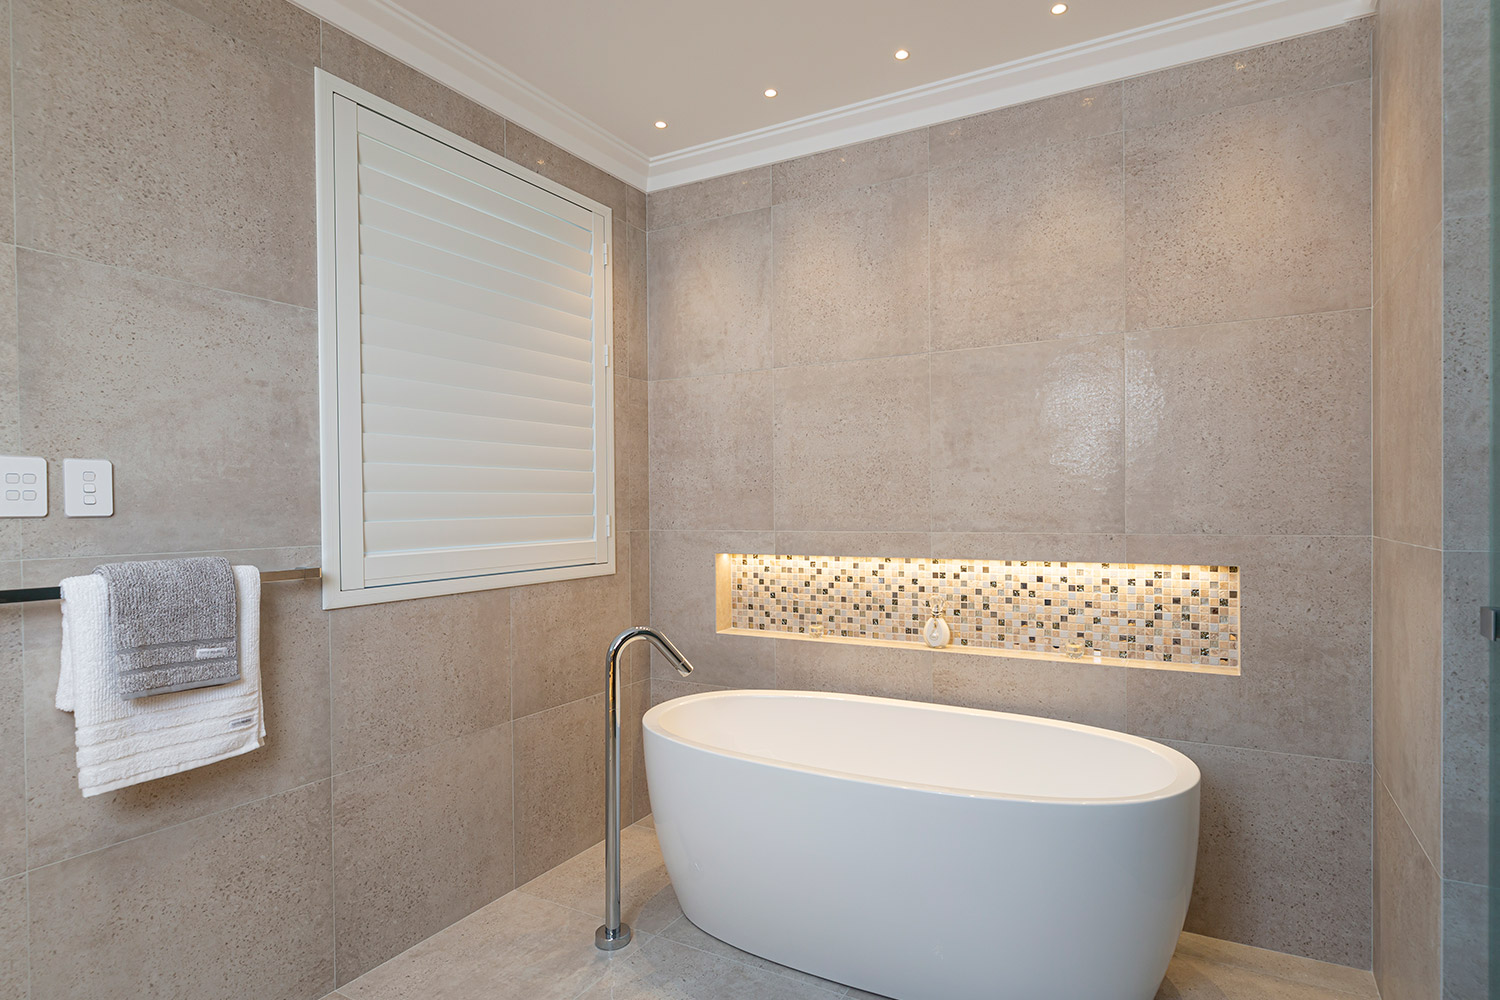 The benefits of plantation shutters in your home